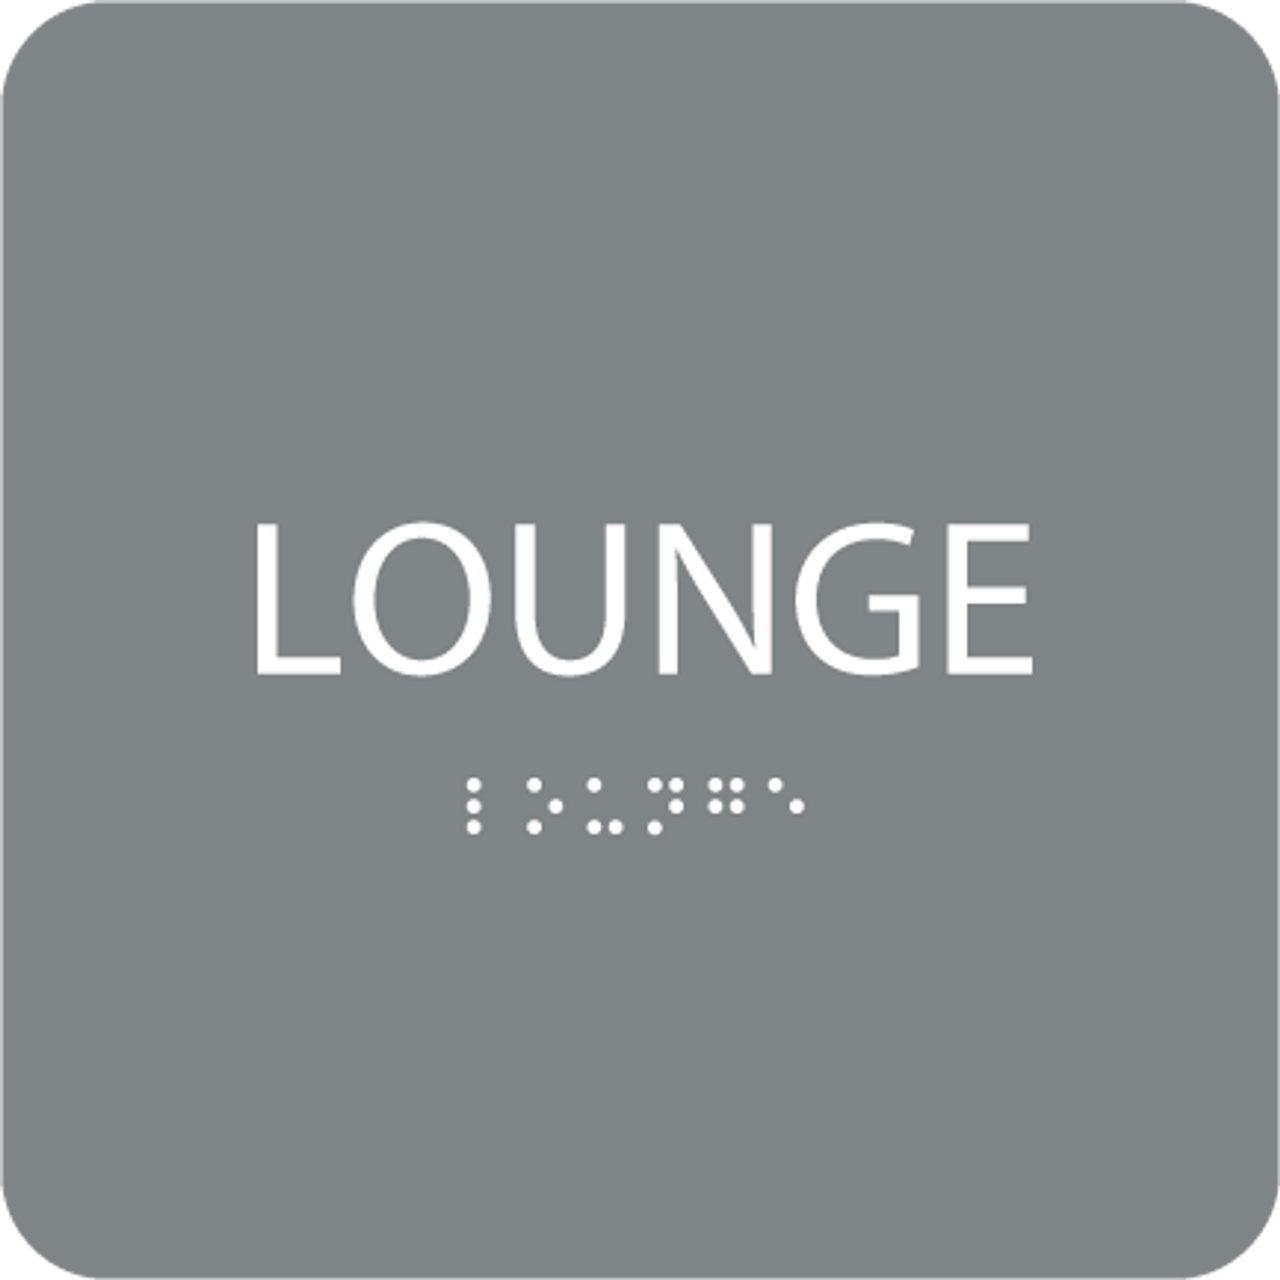 Grey  Lounge ADA Sign